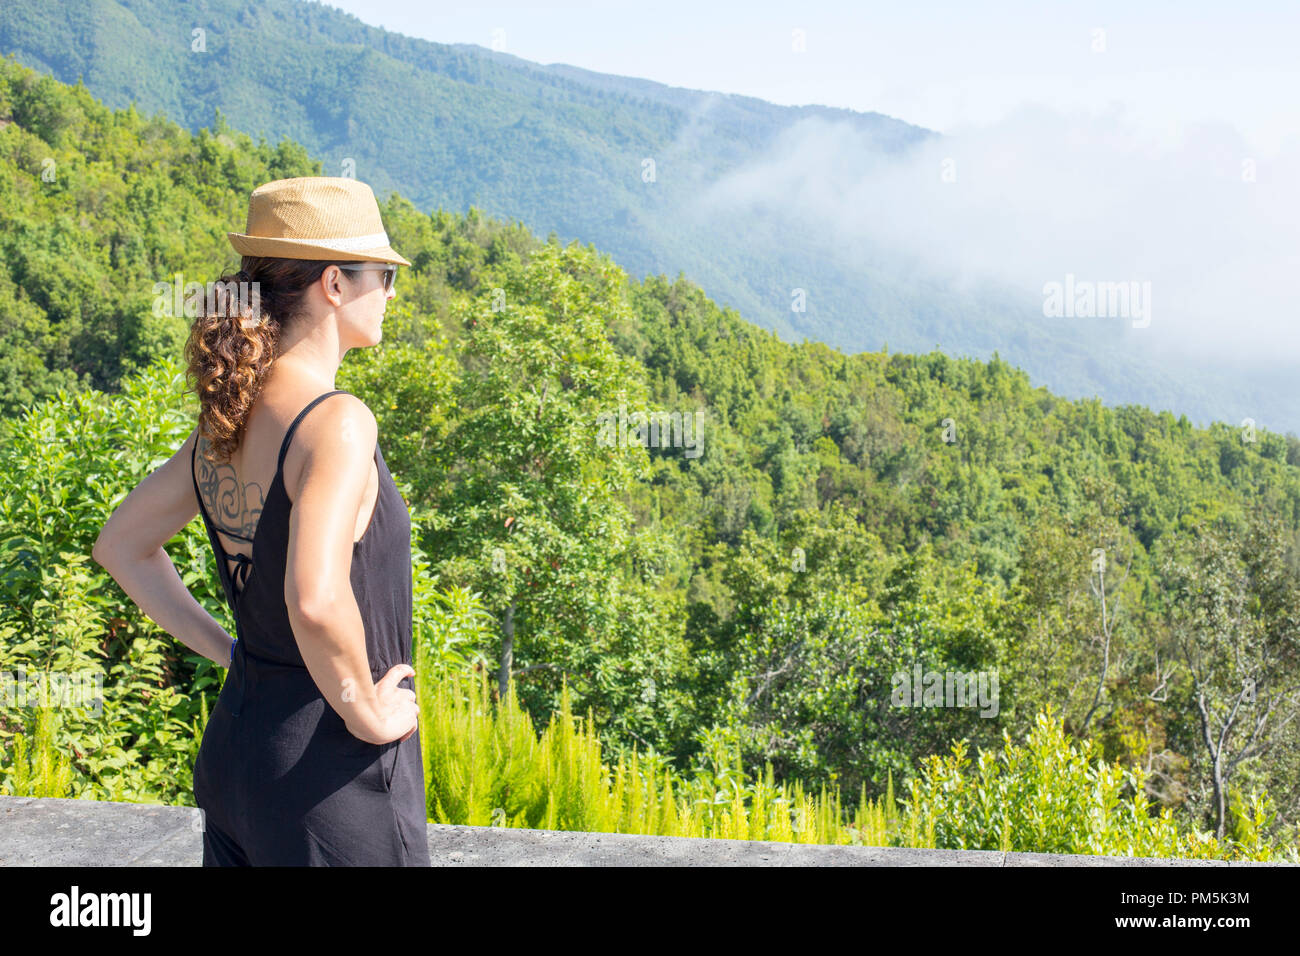 woman with hat and tattoo looking from atop a mountain.jpgwoman with woman with hat and tattoo looking from atop a mountain.jpg - Stock Image